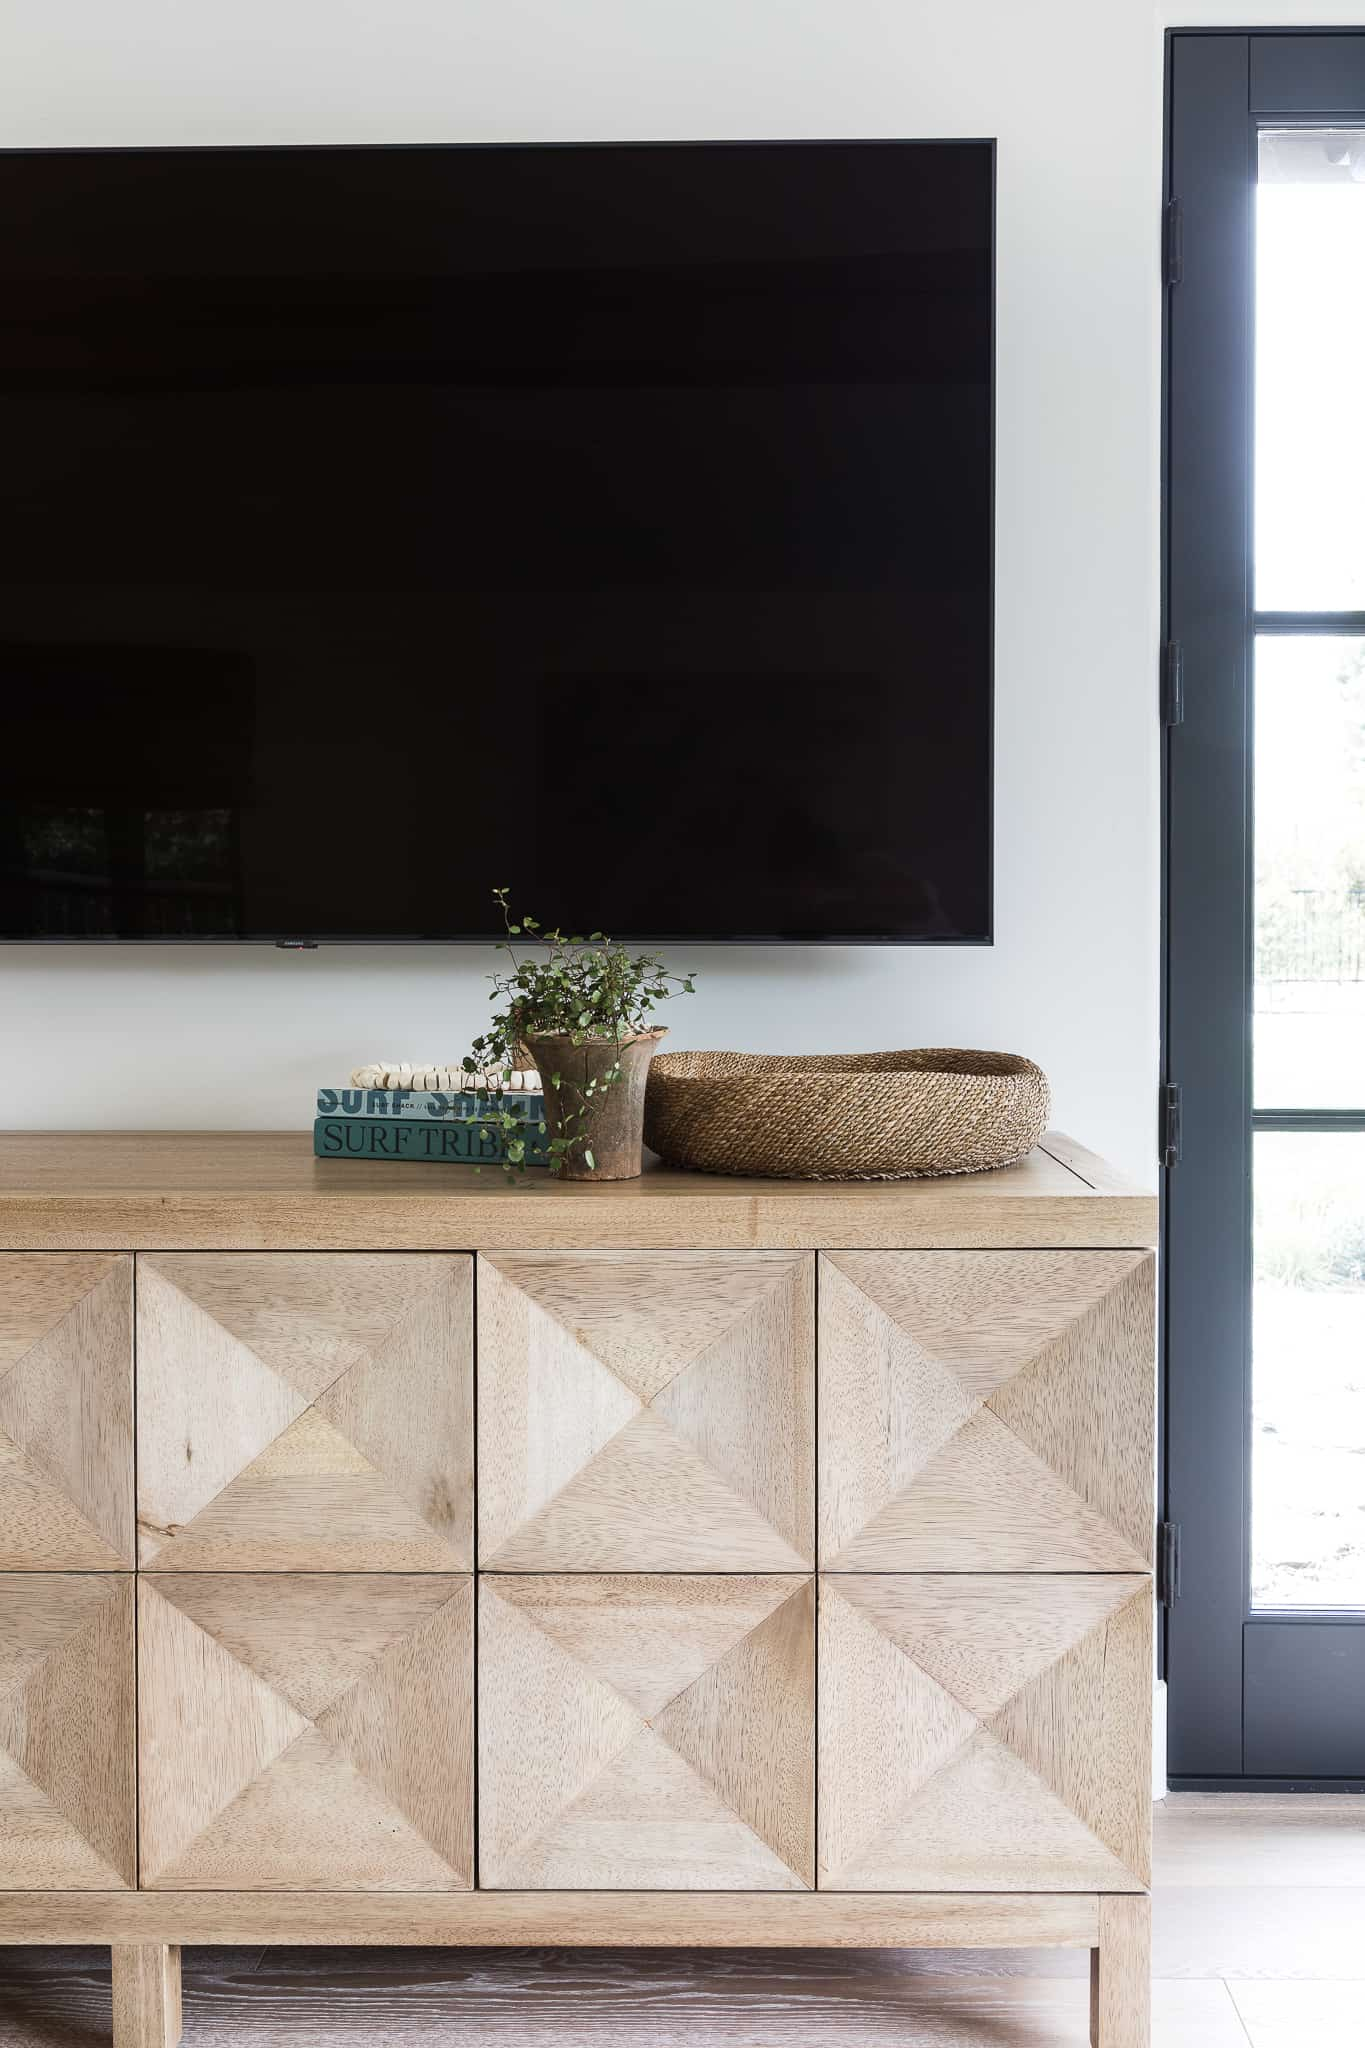 How To Style A Console Table - Mindy Gayer Design Co.